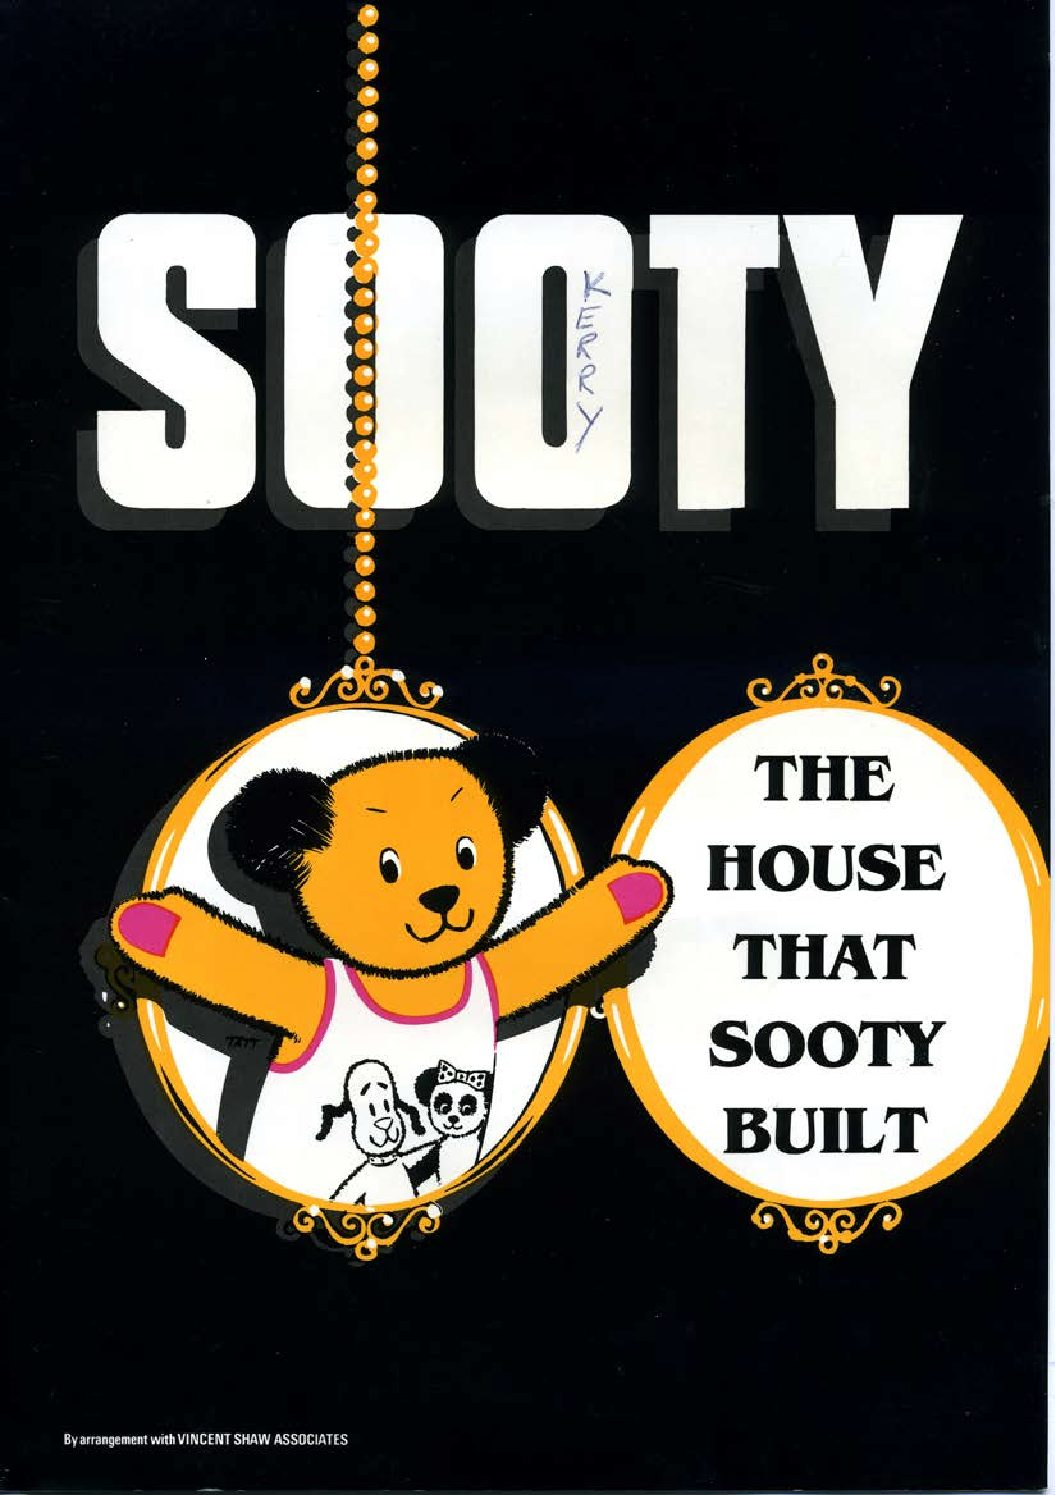 Programme for 'The House that Sooty Built'